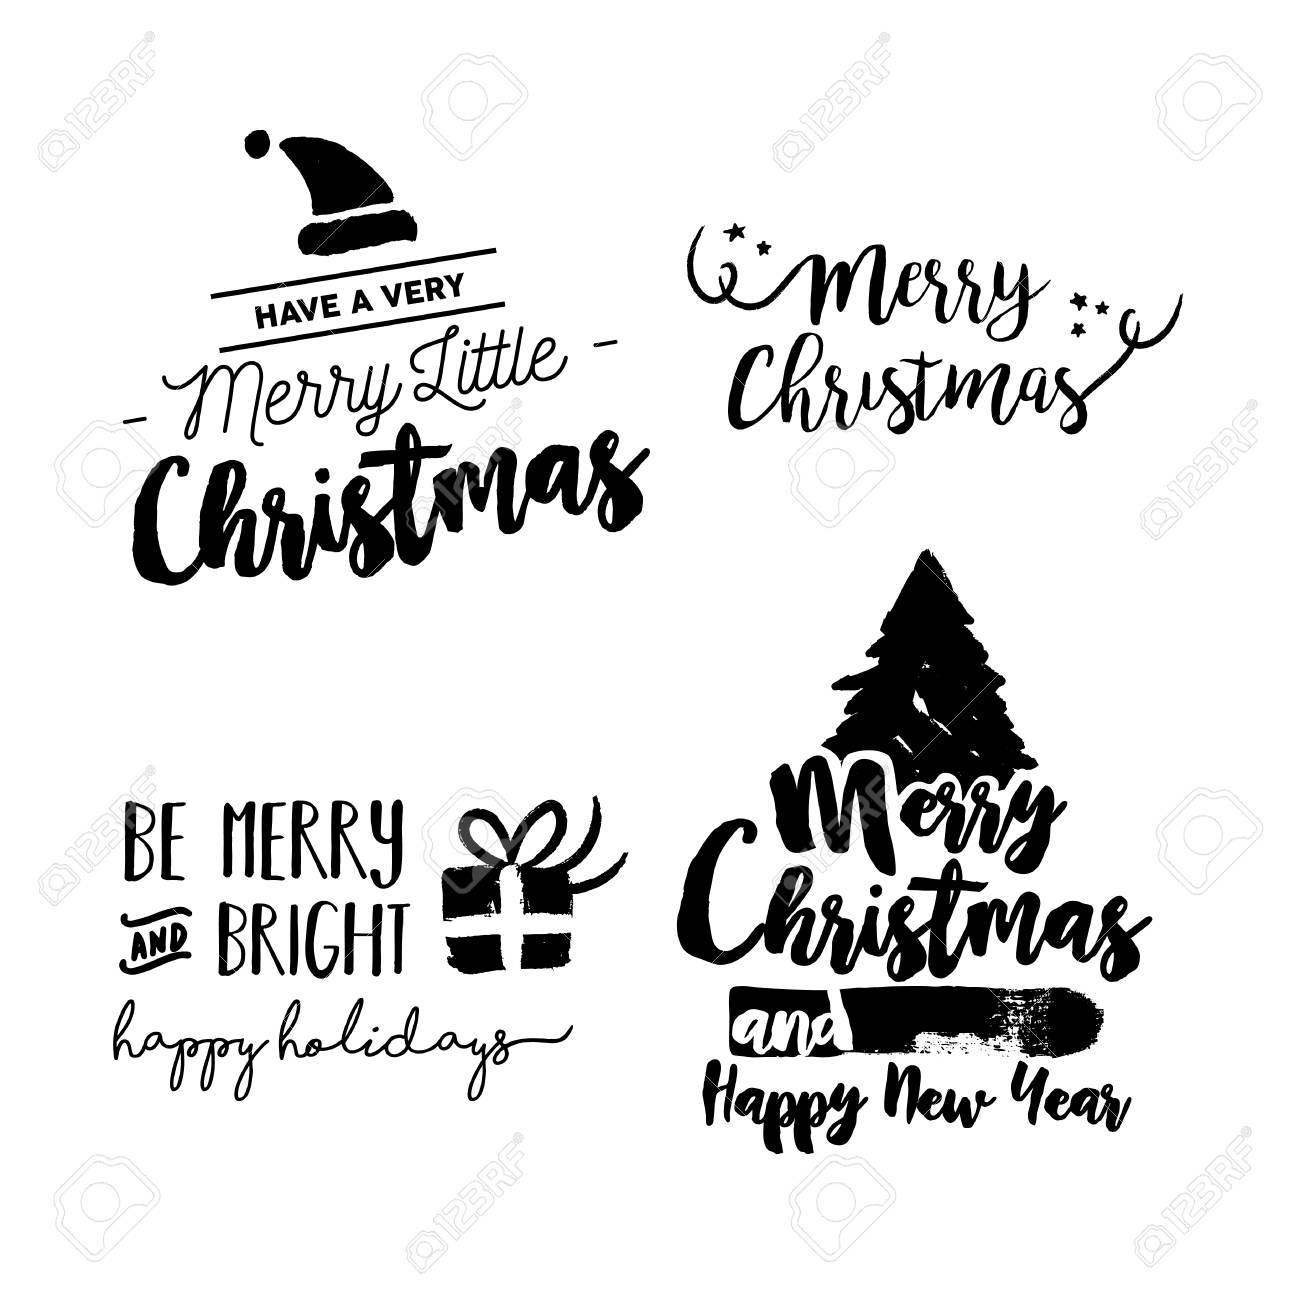 Merry Christmas Text Quote Set, Calligraphy Lettering Design For Holiday  Season. Creative Handwritten Typography